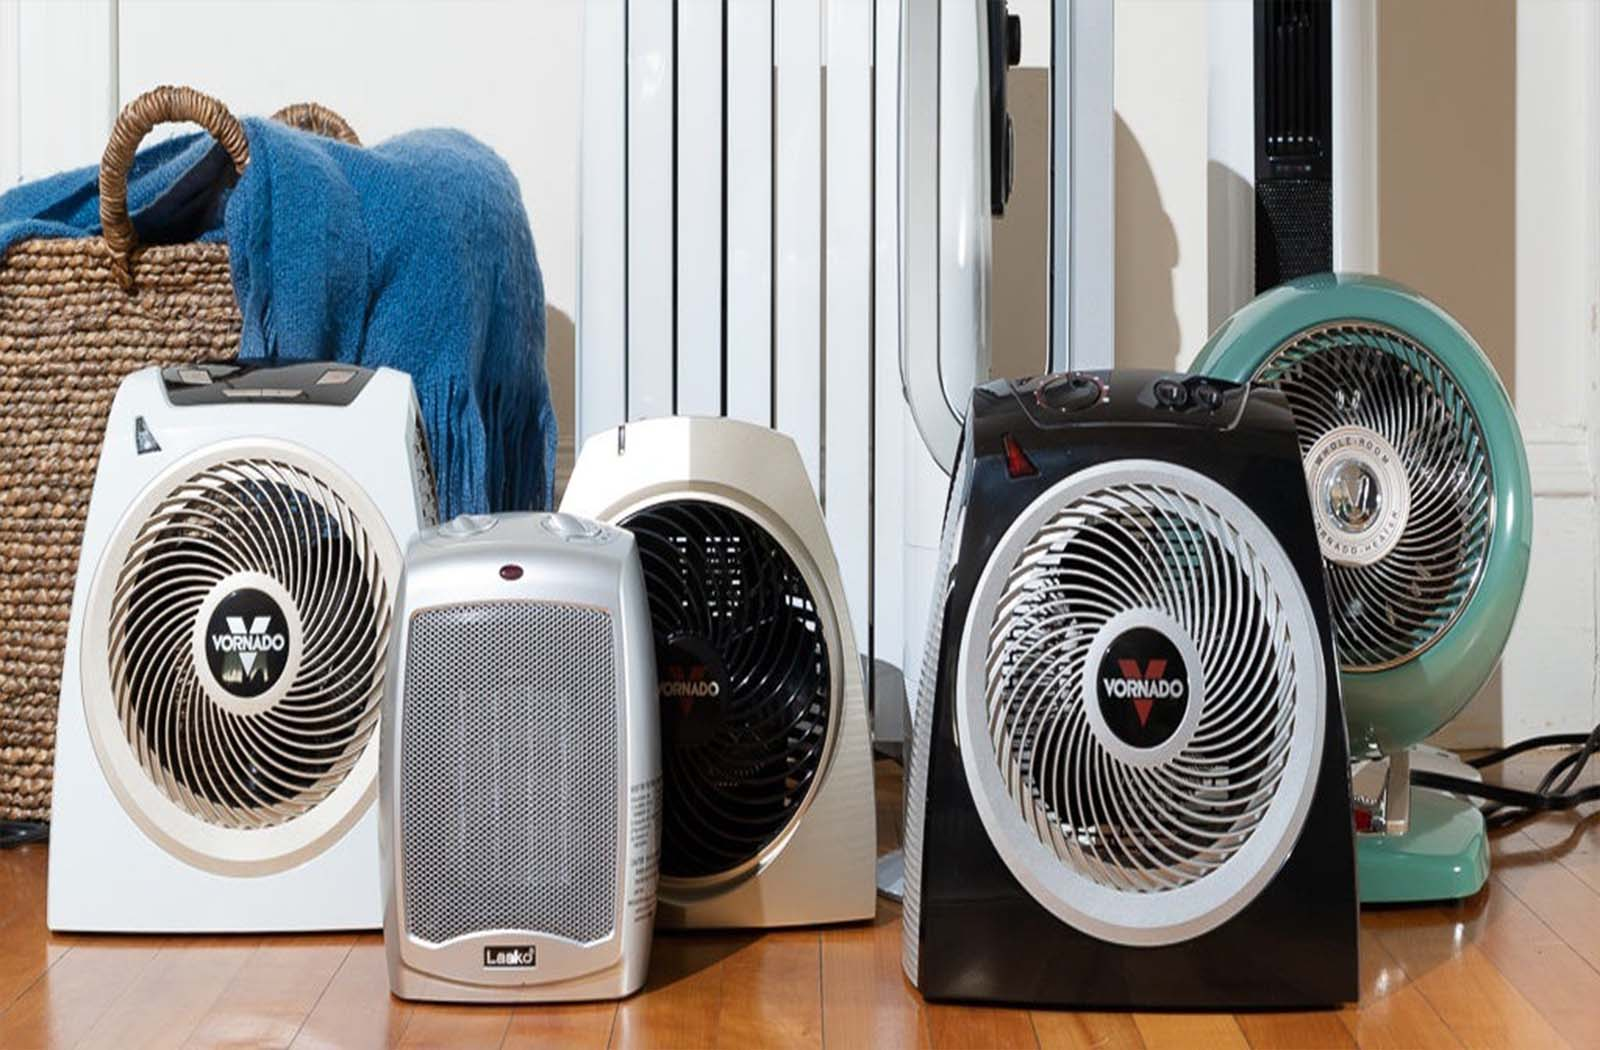 Top 3 Best Space Heaters 2020 Review